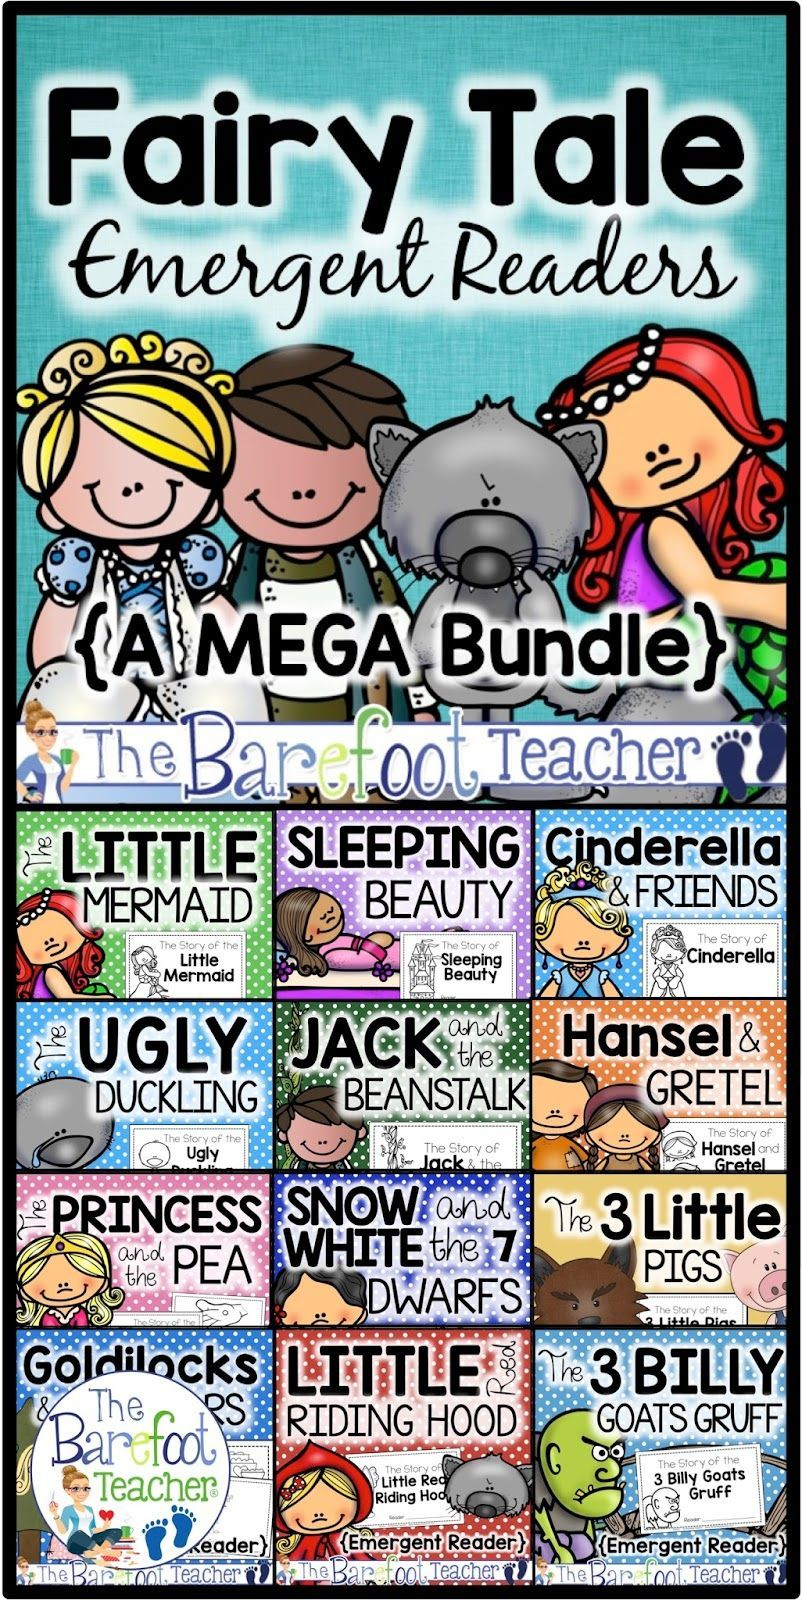 Fairy Tale Emergent Readers - Plus a FREE DOWNLOAD-#download #emergent #fairy #Free #readers #Tale